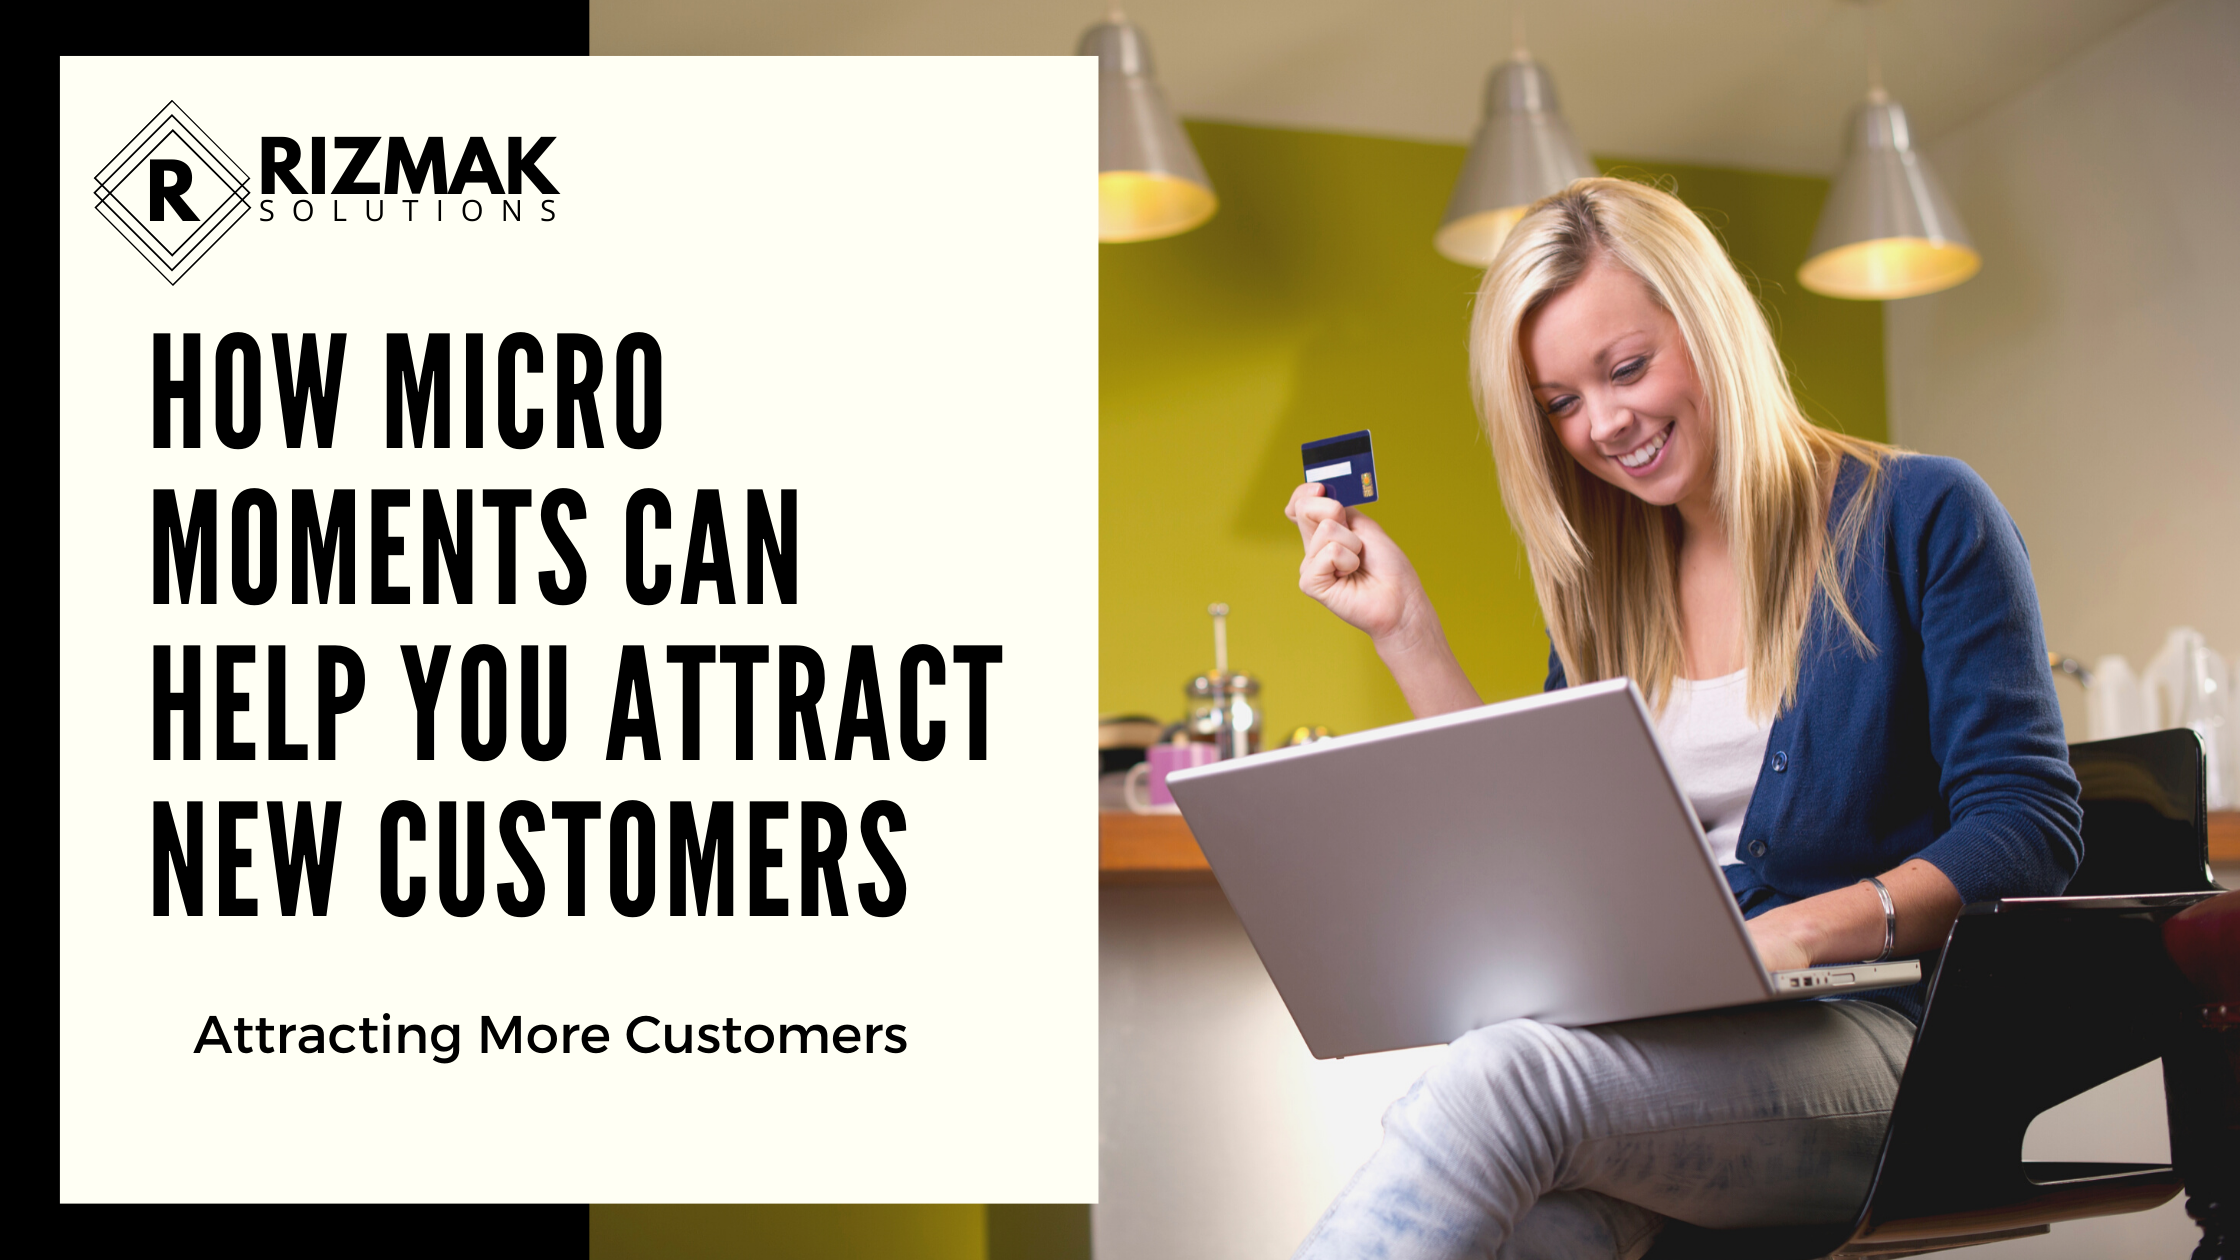 How Micro Moments Can Help You Attract New Customers